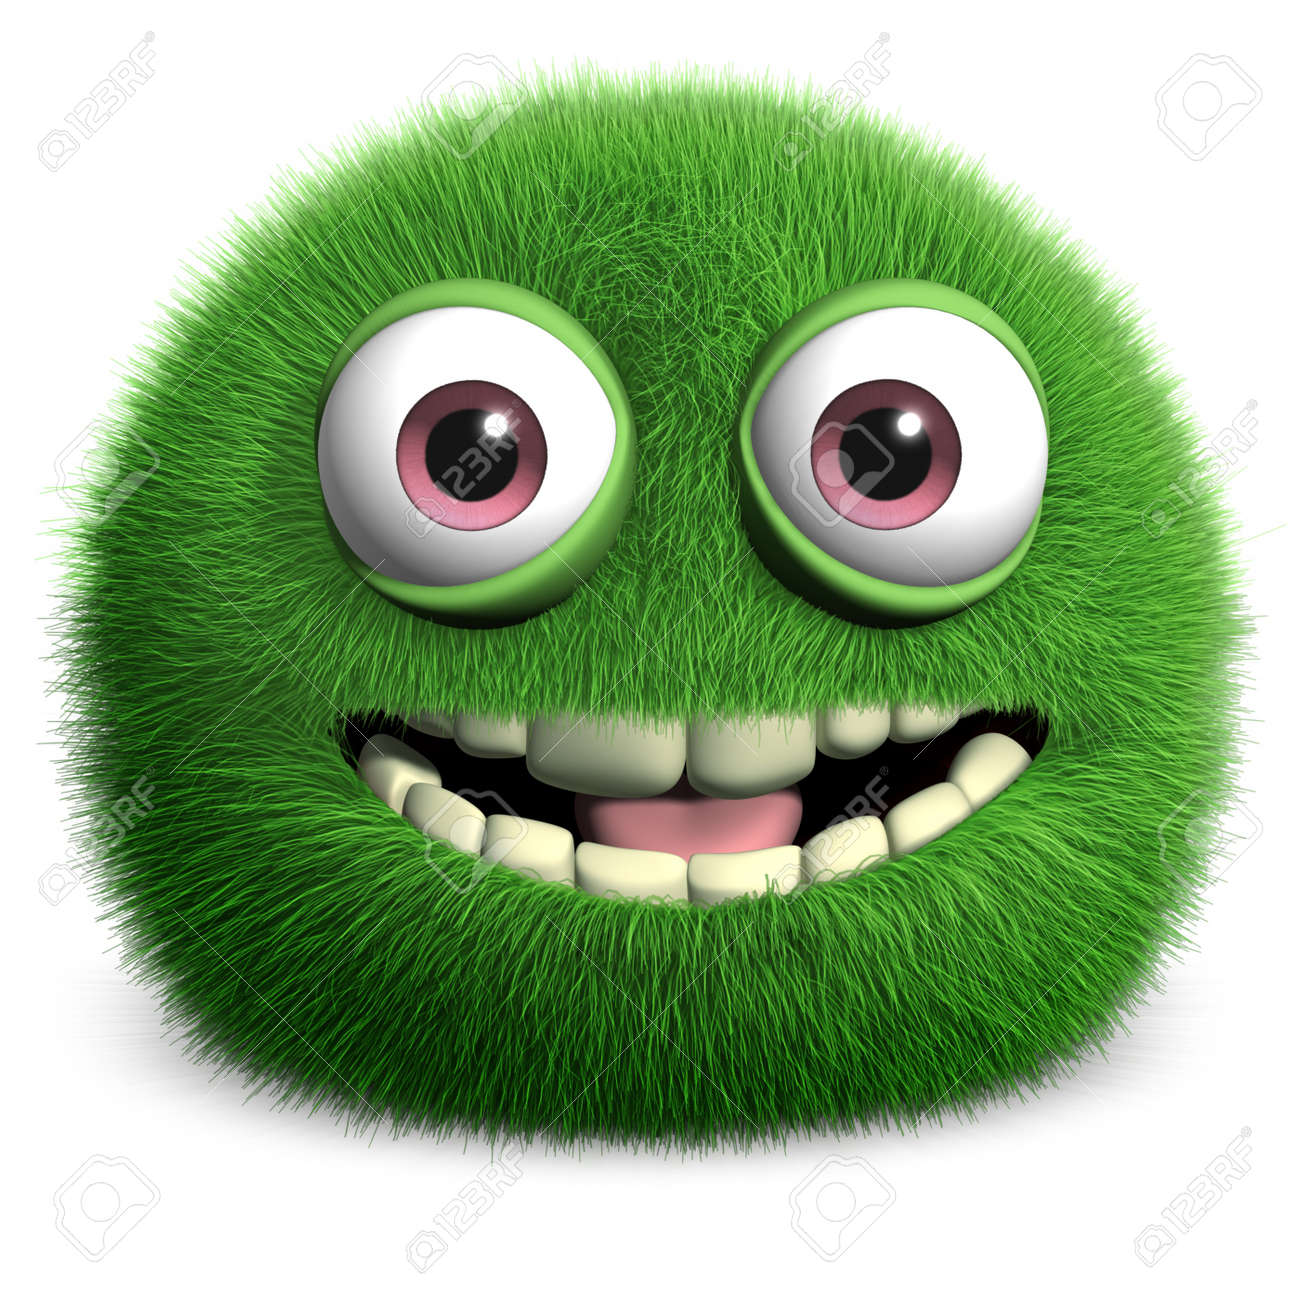 furry green monster Stock Photo - 15613754